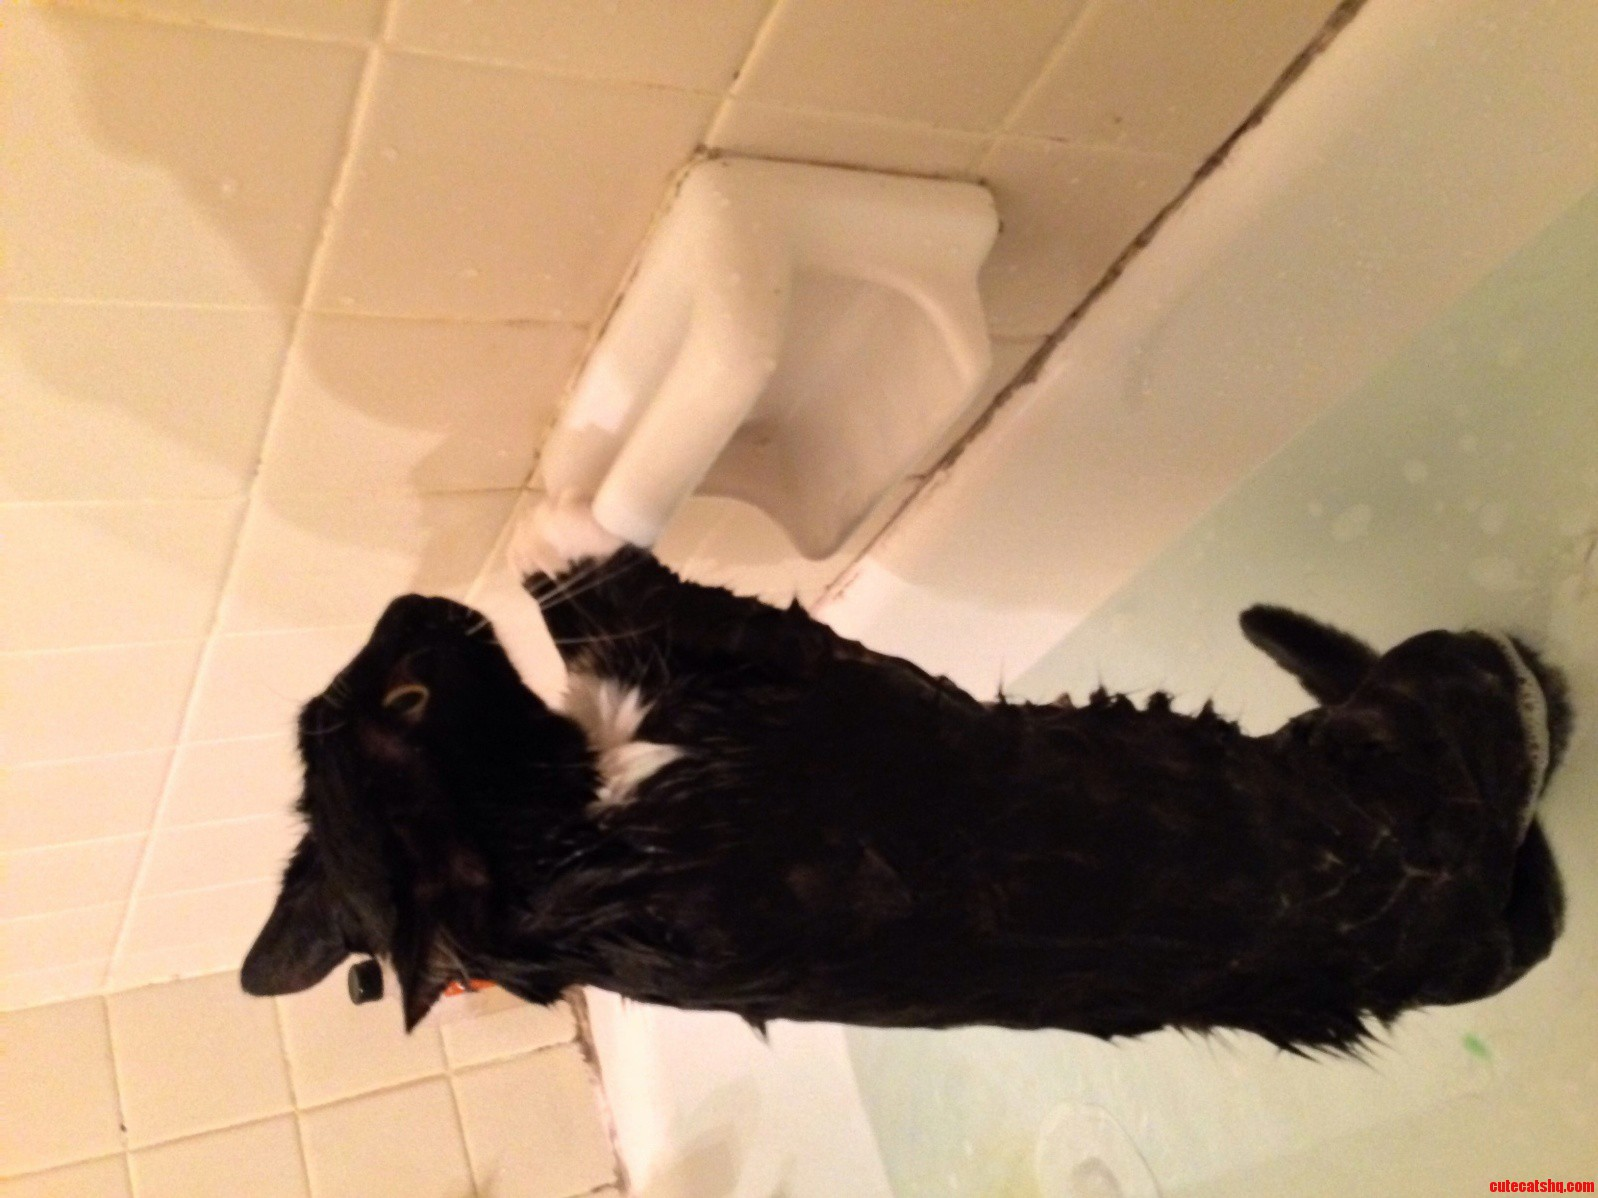 This Is How My Cat Gets His Bath. He Stays Like This And Prays For It To End.